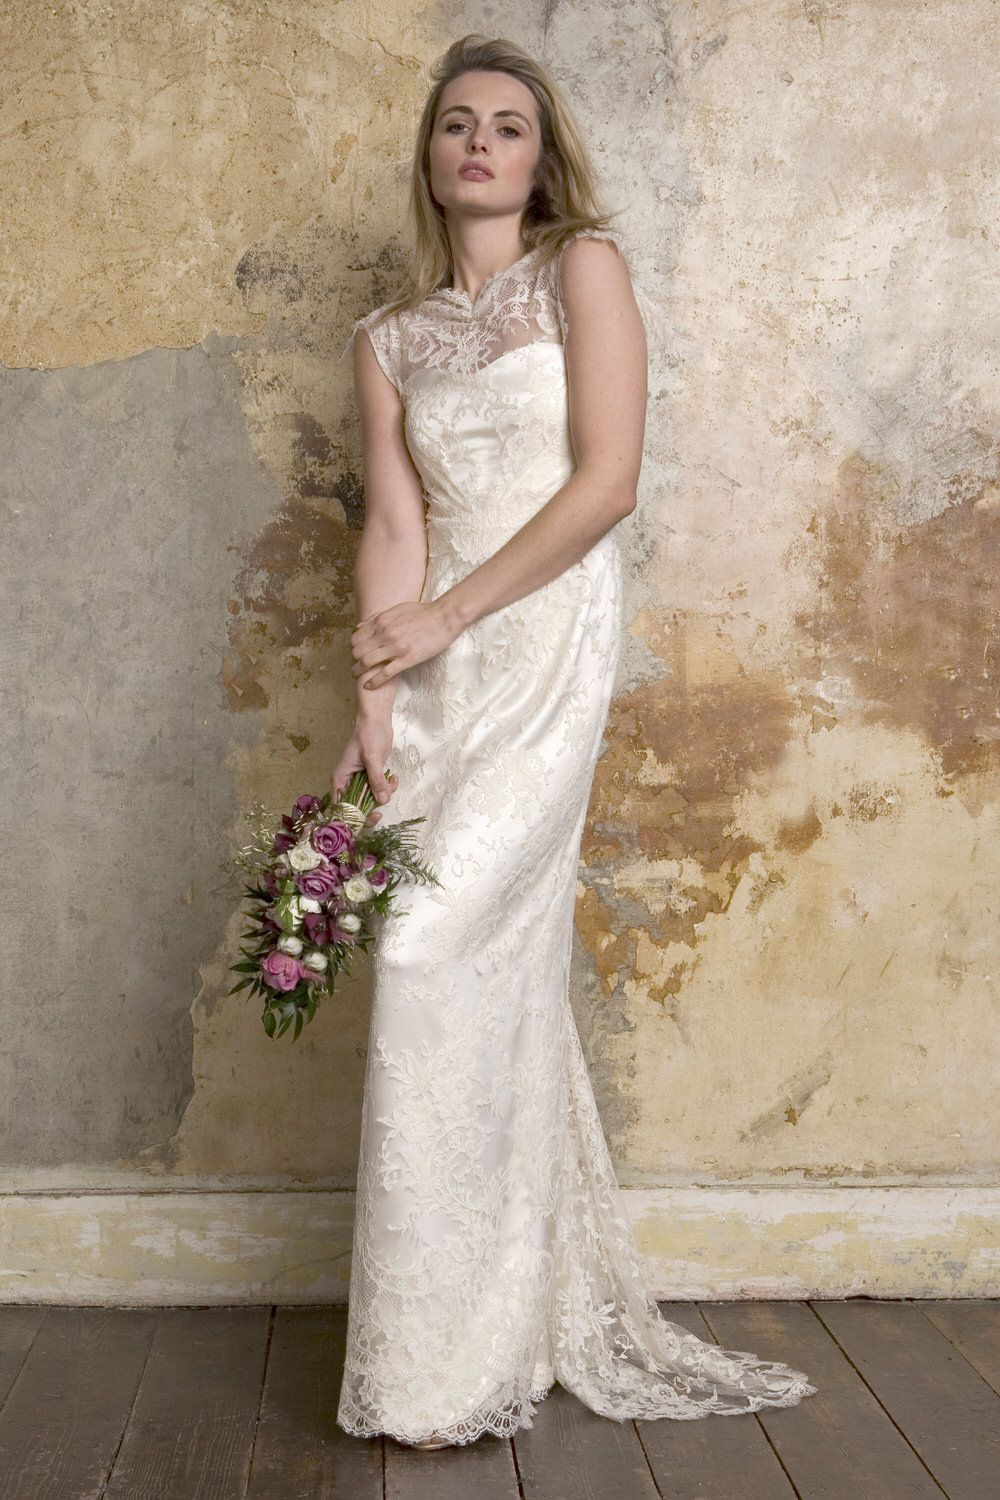 Sally lacock bridal gowns sally and gowns